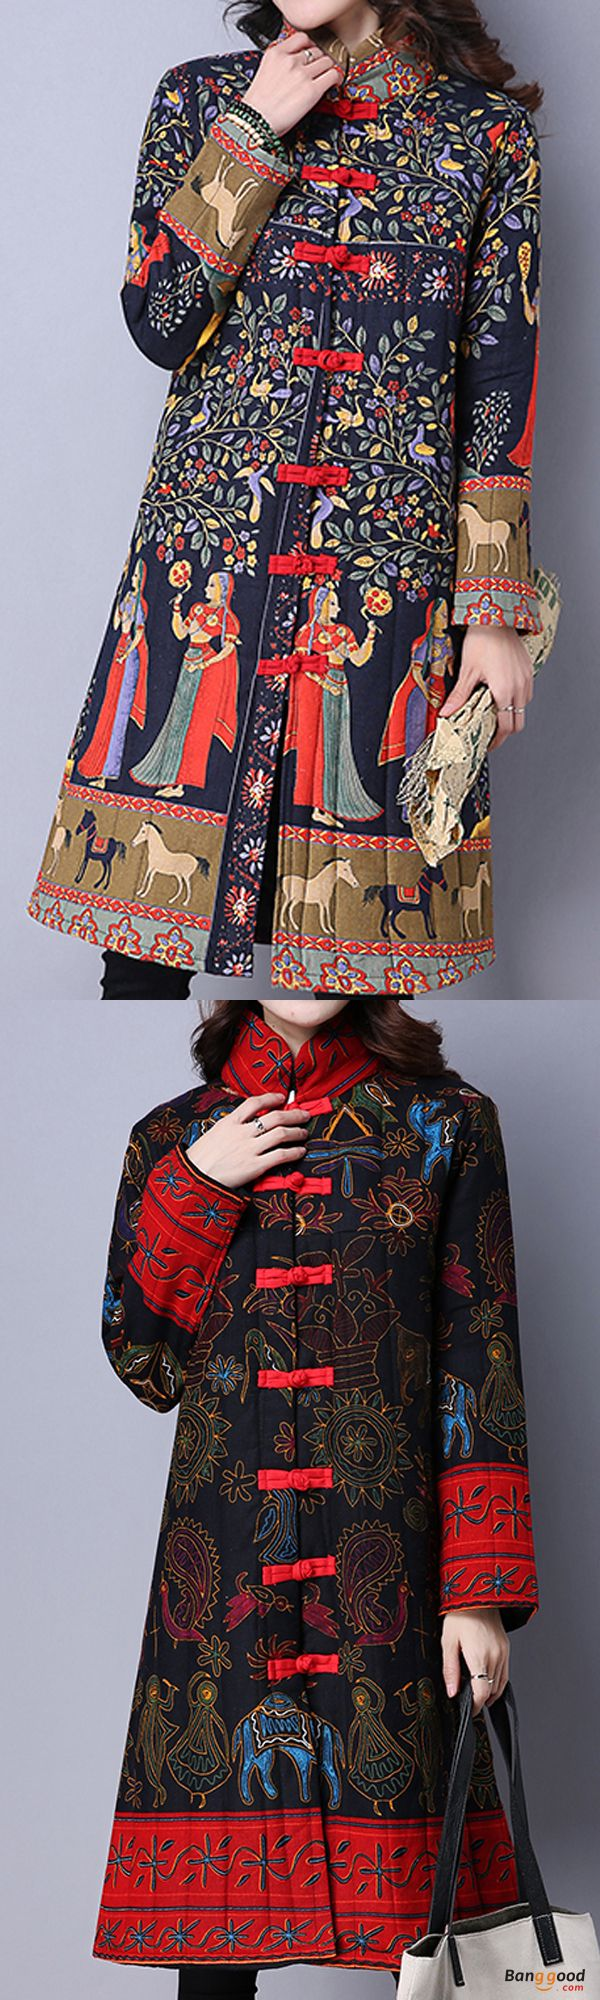 US$44.89+Free shipping. Size: S~2XL. Material: Cotton, Polyester. Home or out, love this sexy and casual coat. Gracila Vintage Women Chinese Frog Stand Collar Printed Long Sleeve Coats.